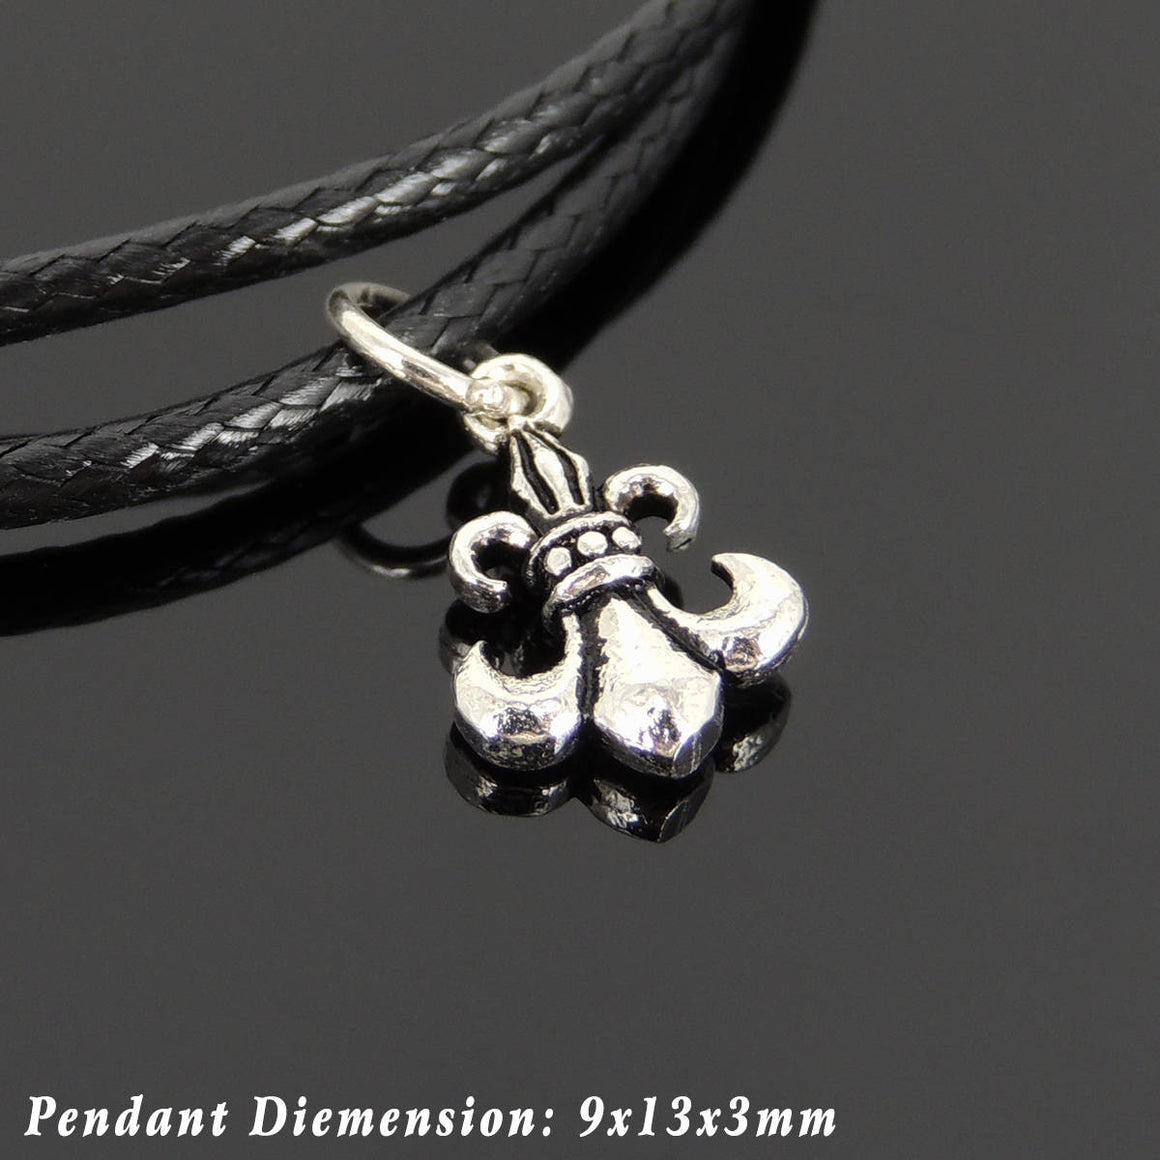 Adjustable Wax Rope Bracelet with S925 Sterling Silver Fleur de Lis Pendant - Handmade by Gem & Silver BR1131